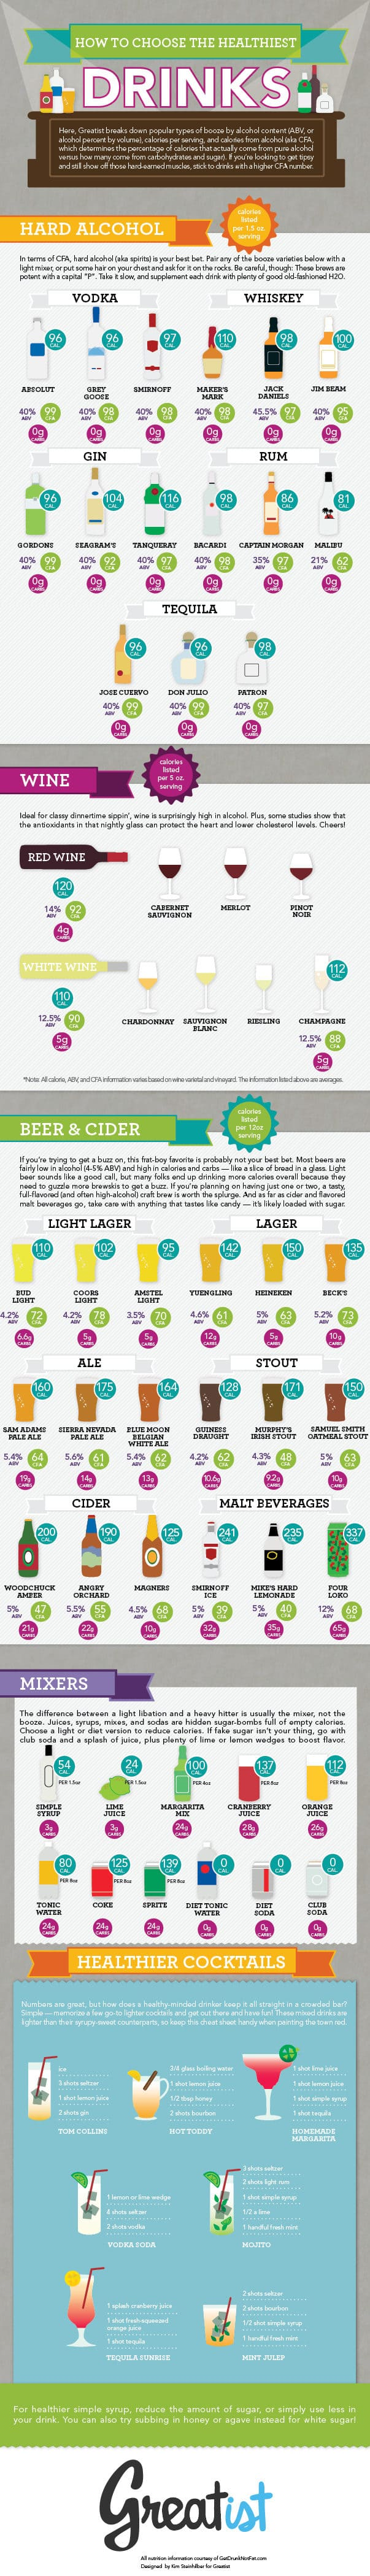 Choose healthy wine, beer and cocktails